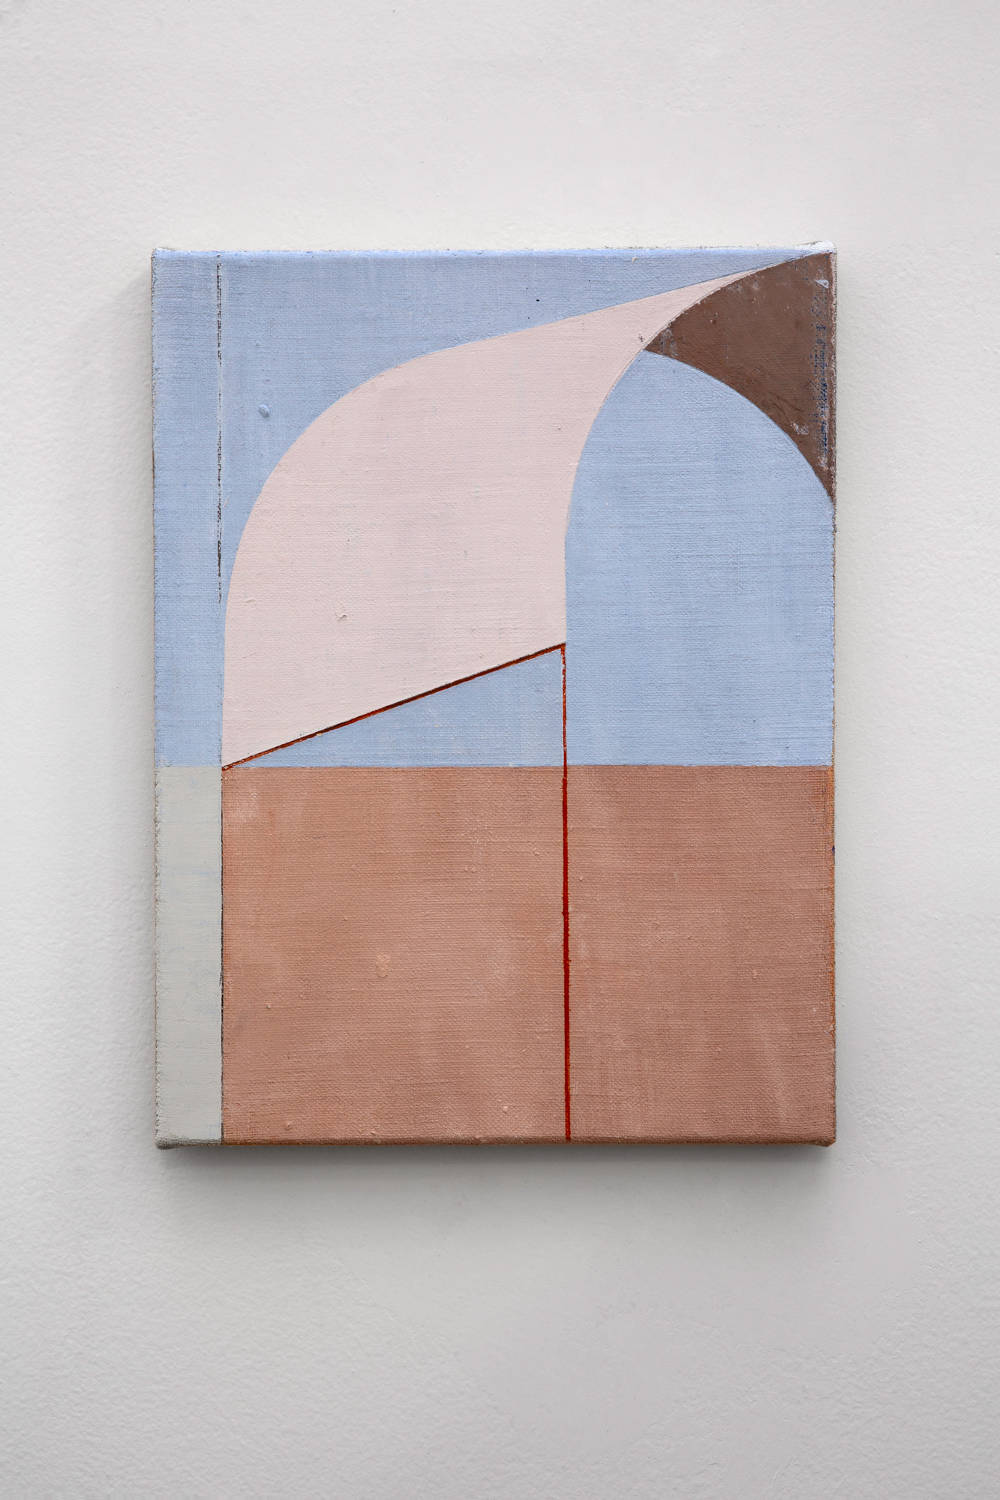 Fábio Miguez, untitled, 2019. Oil and wax on linen 35 x 27 cm 13.8 x 10.6 in